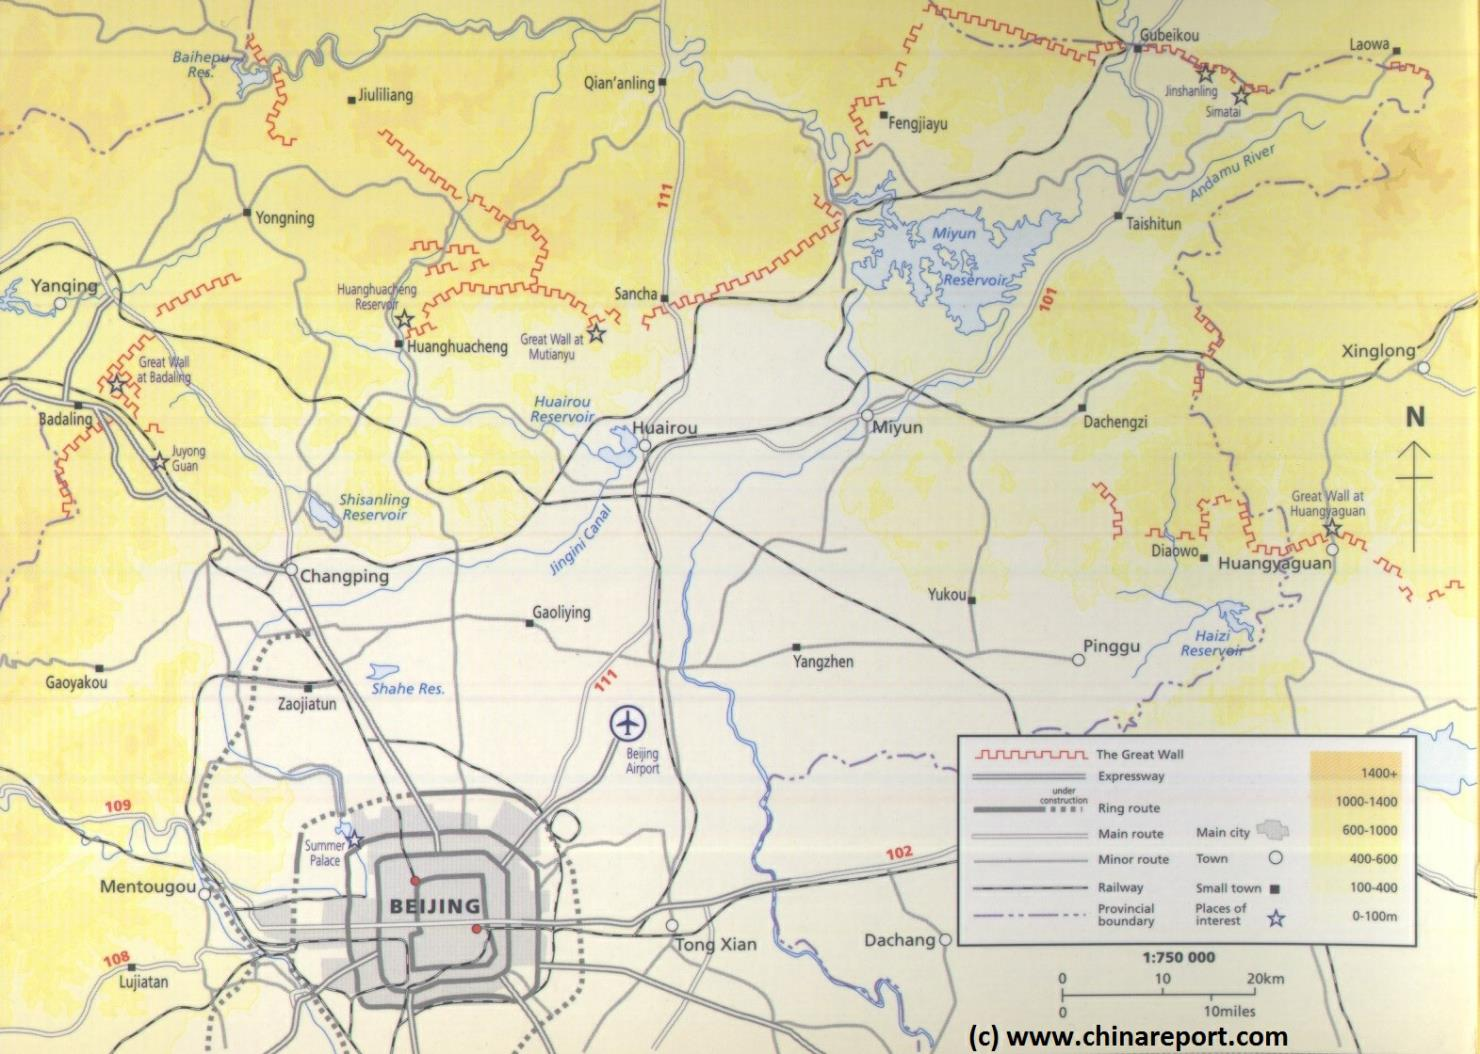 Great Wall Of China On China Map.Schematic Map Great Wall Of China Locations In Beijing City Province 01